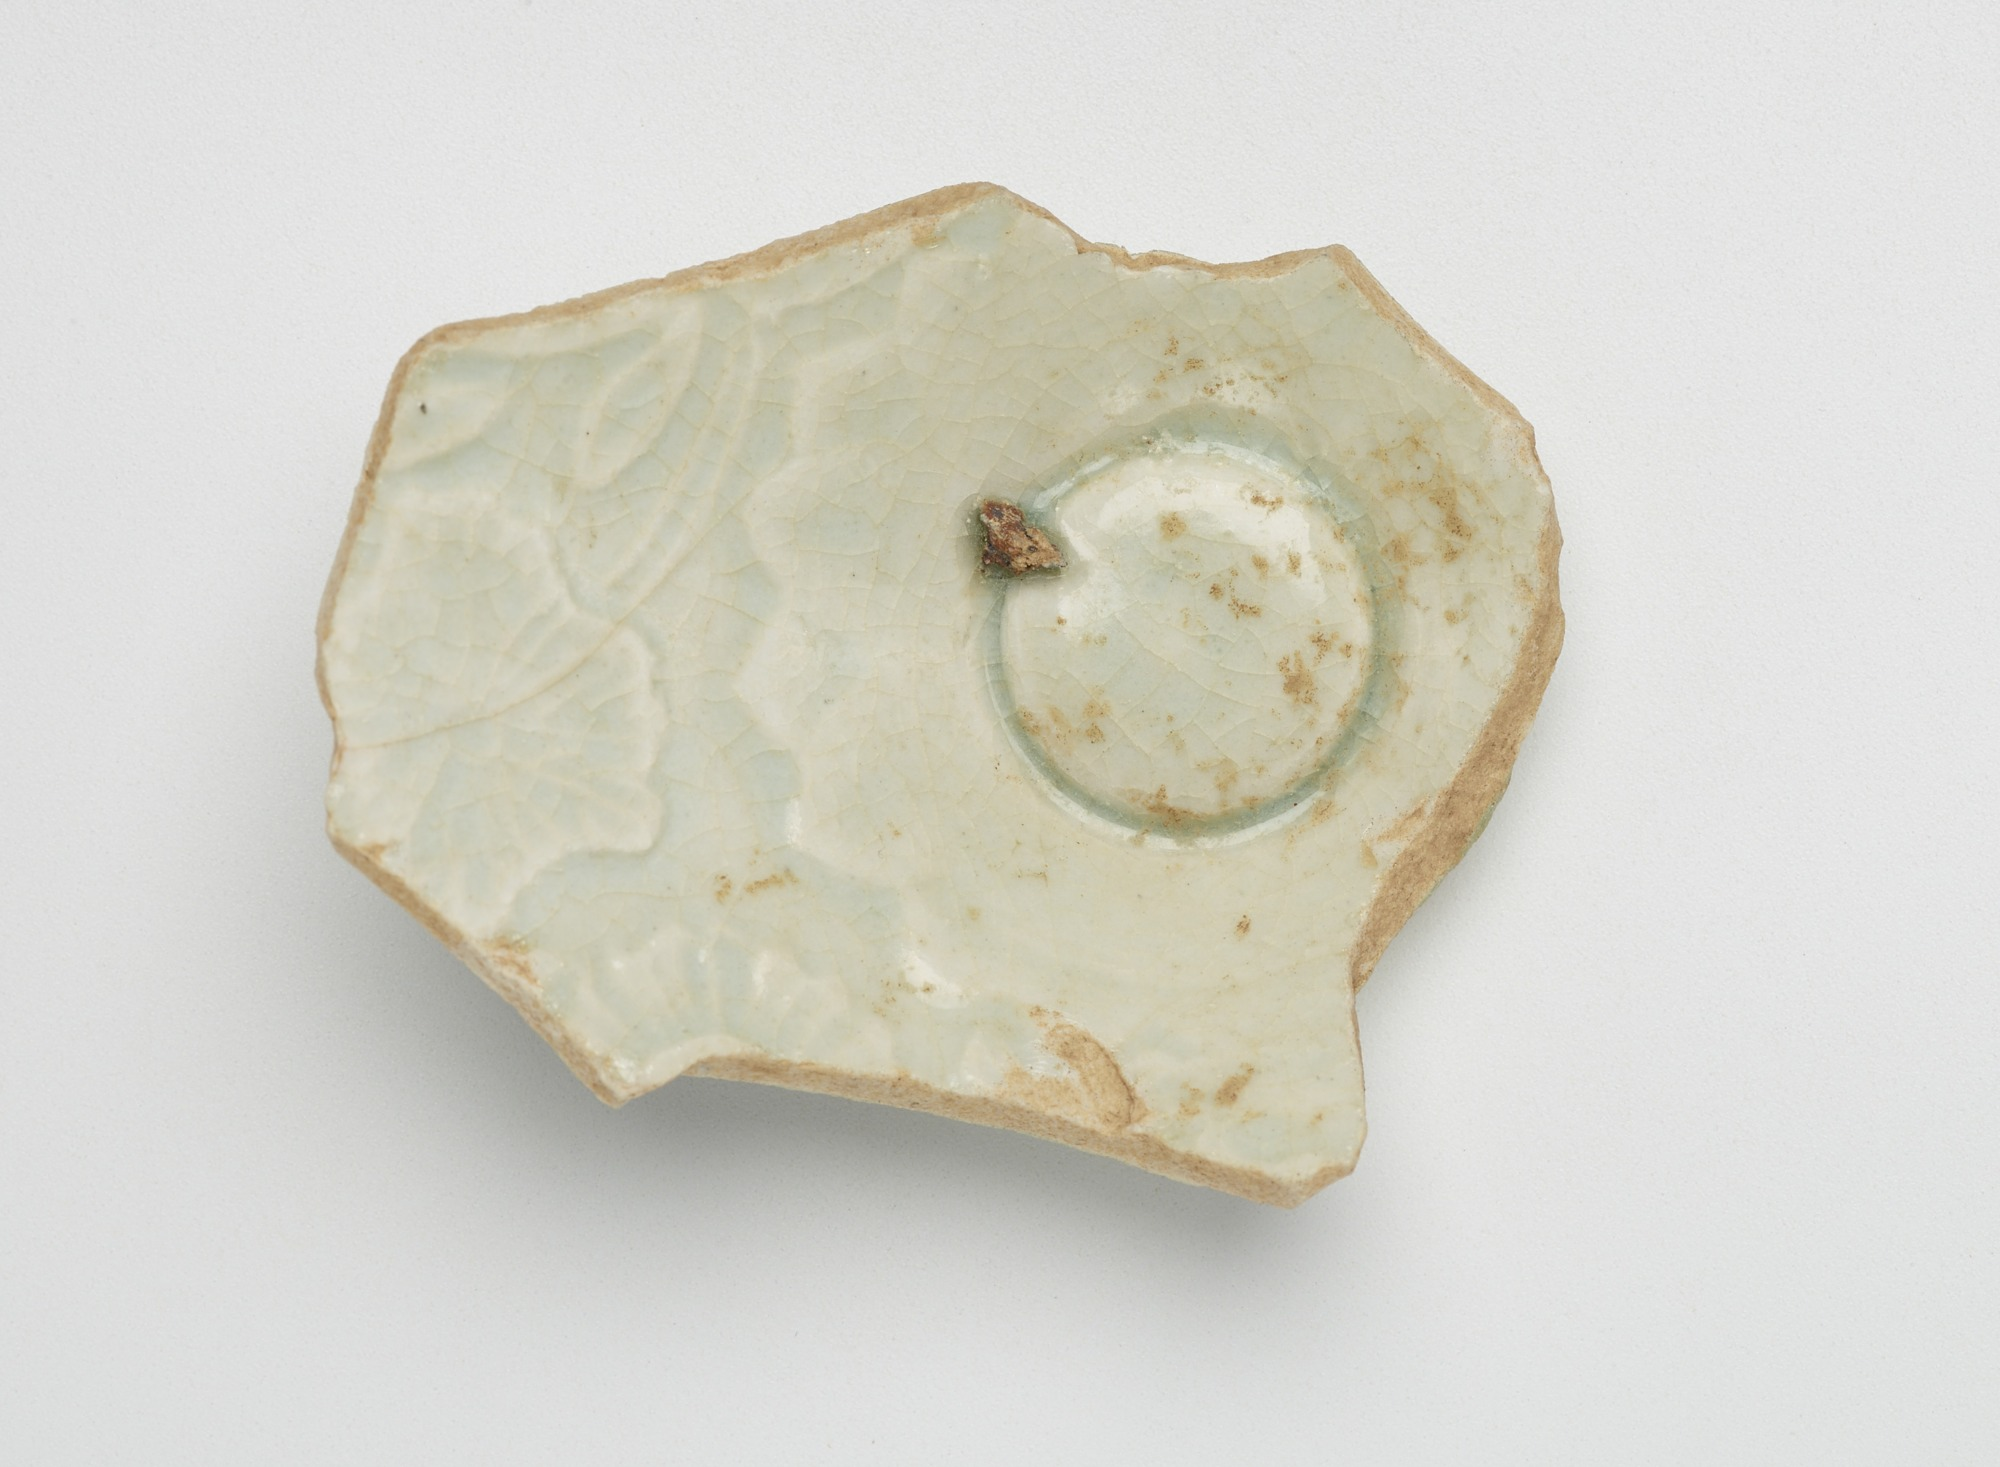 Fragment of bowlw ith molded decoration